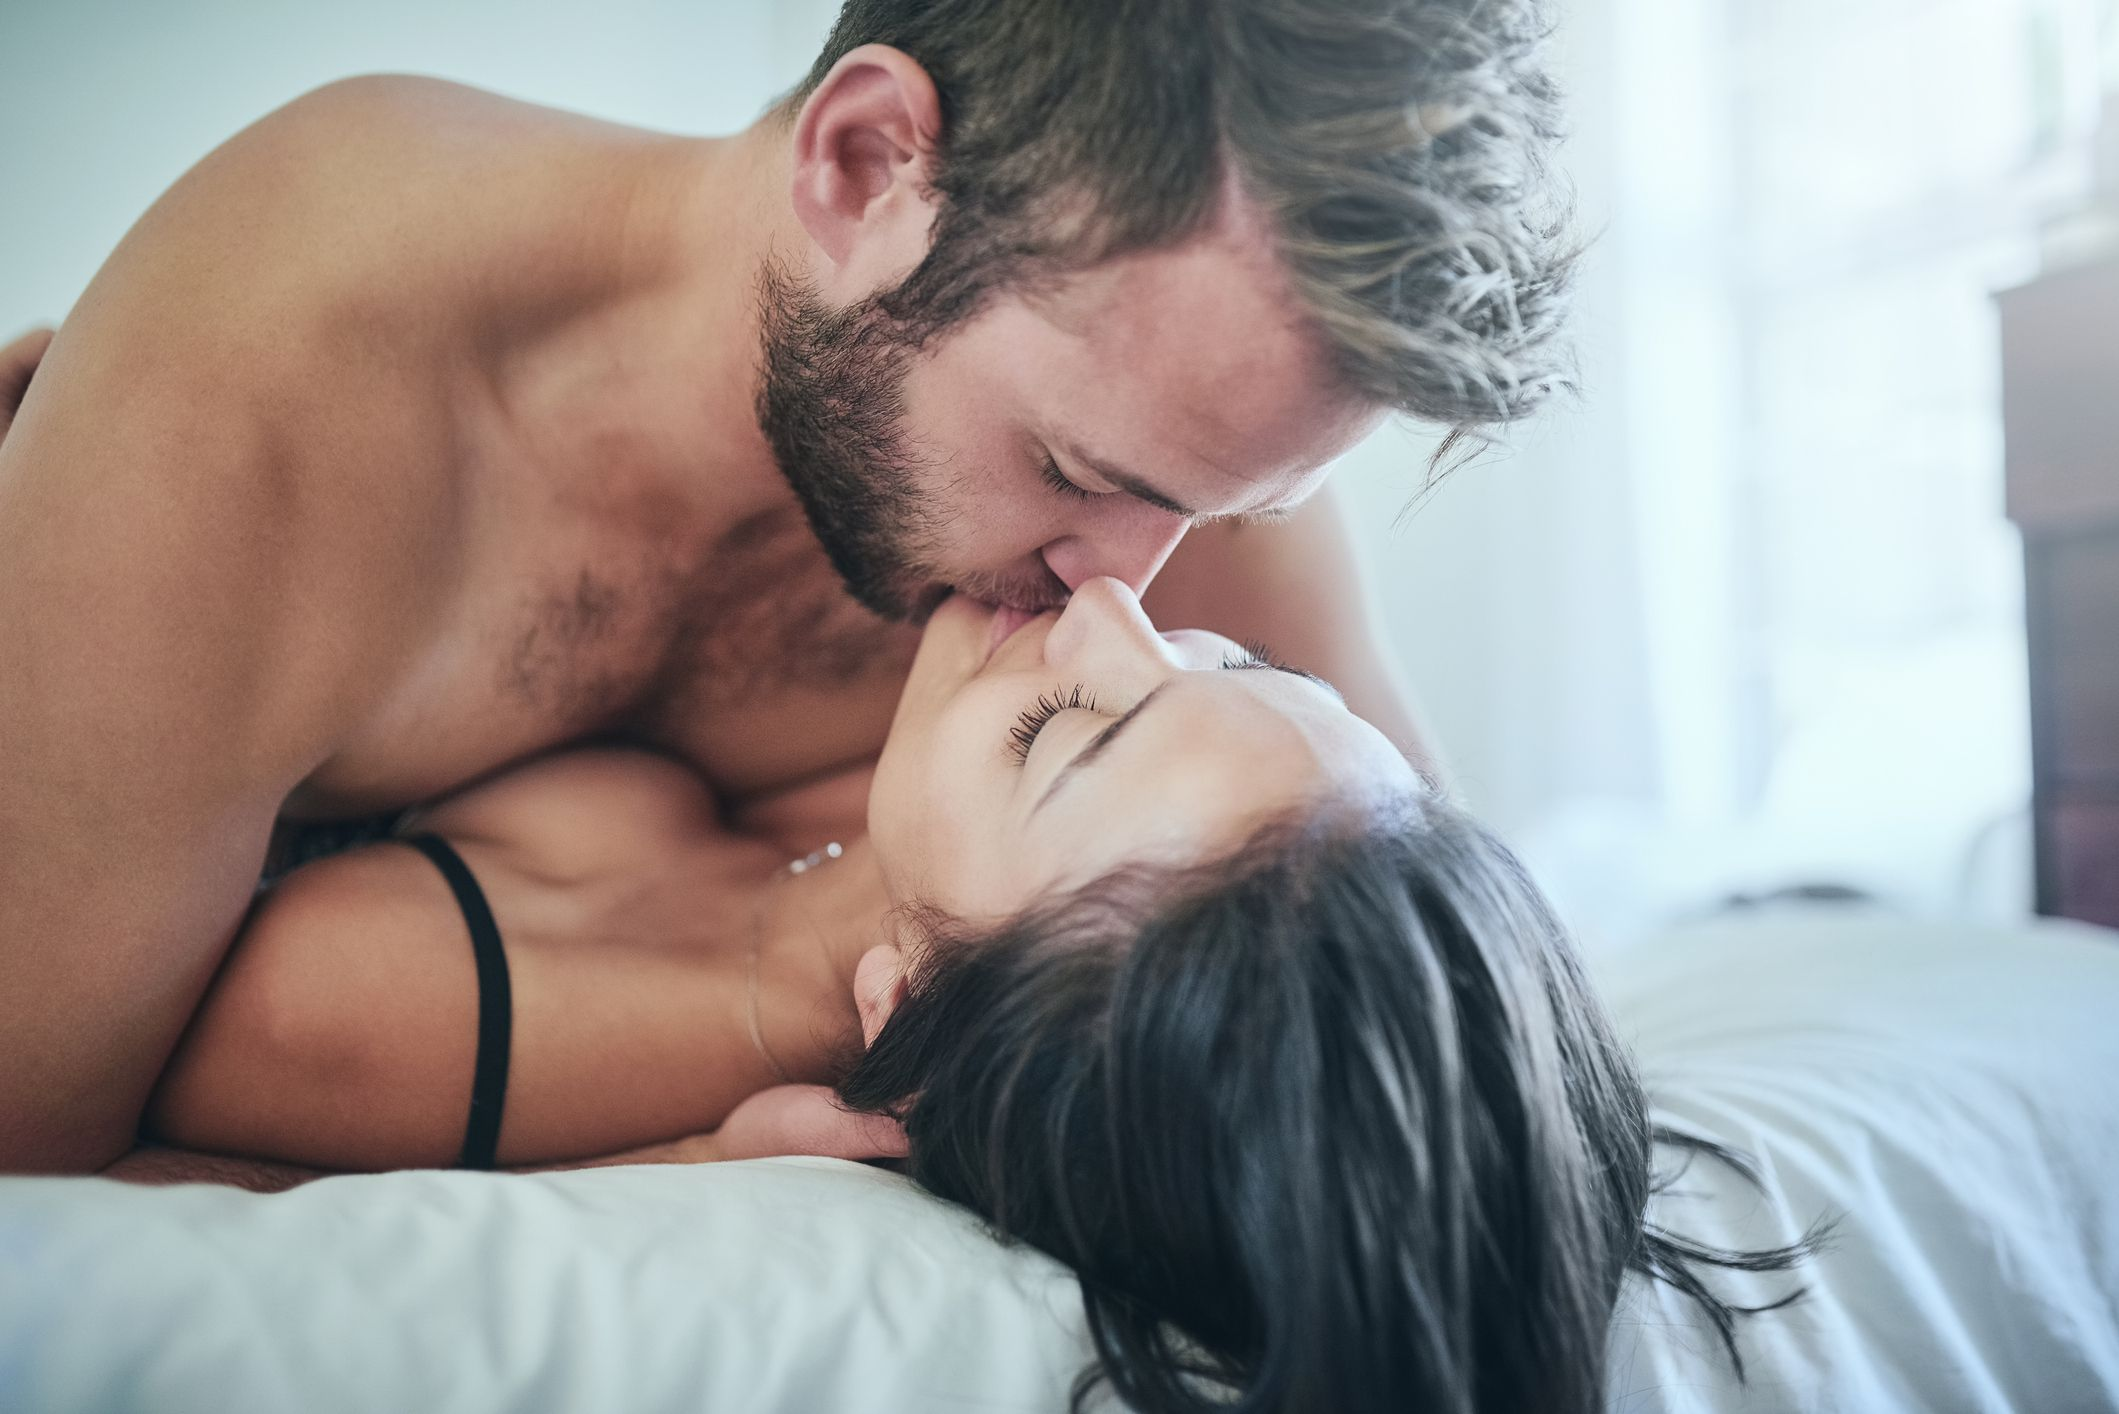 Male sex drive: everything you need to know about male libido